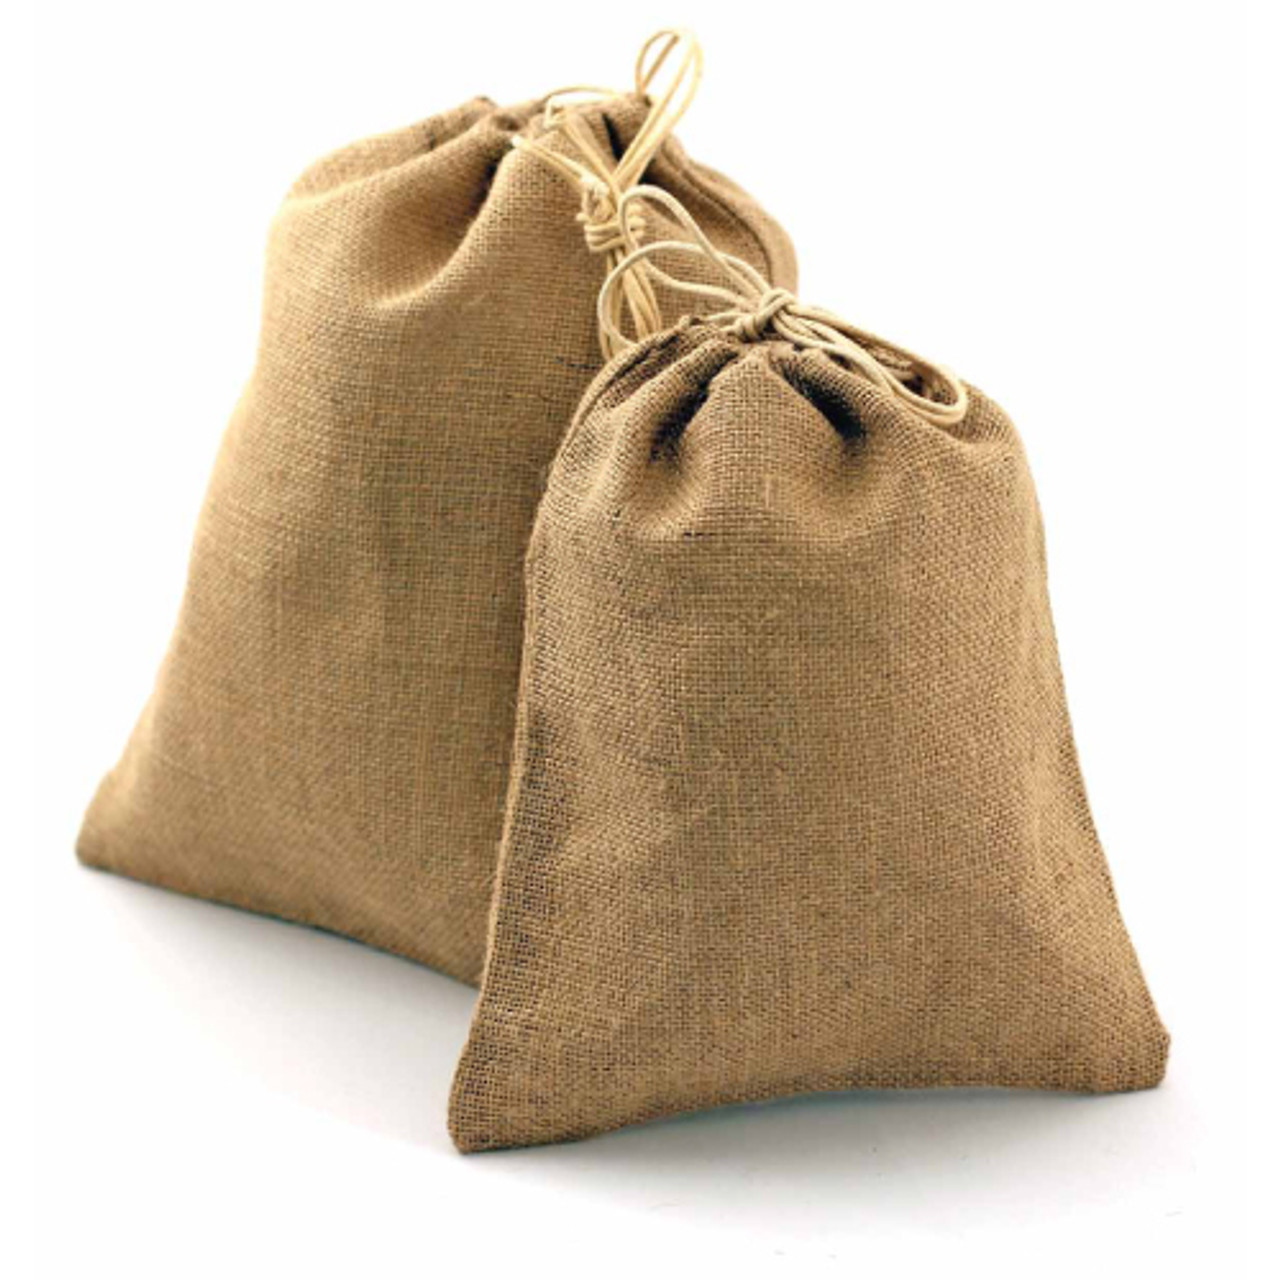 Jute Bag with Cotton Cord  (8 sizes